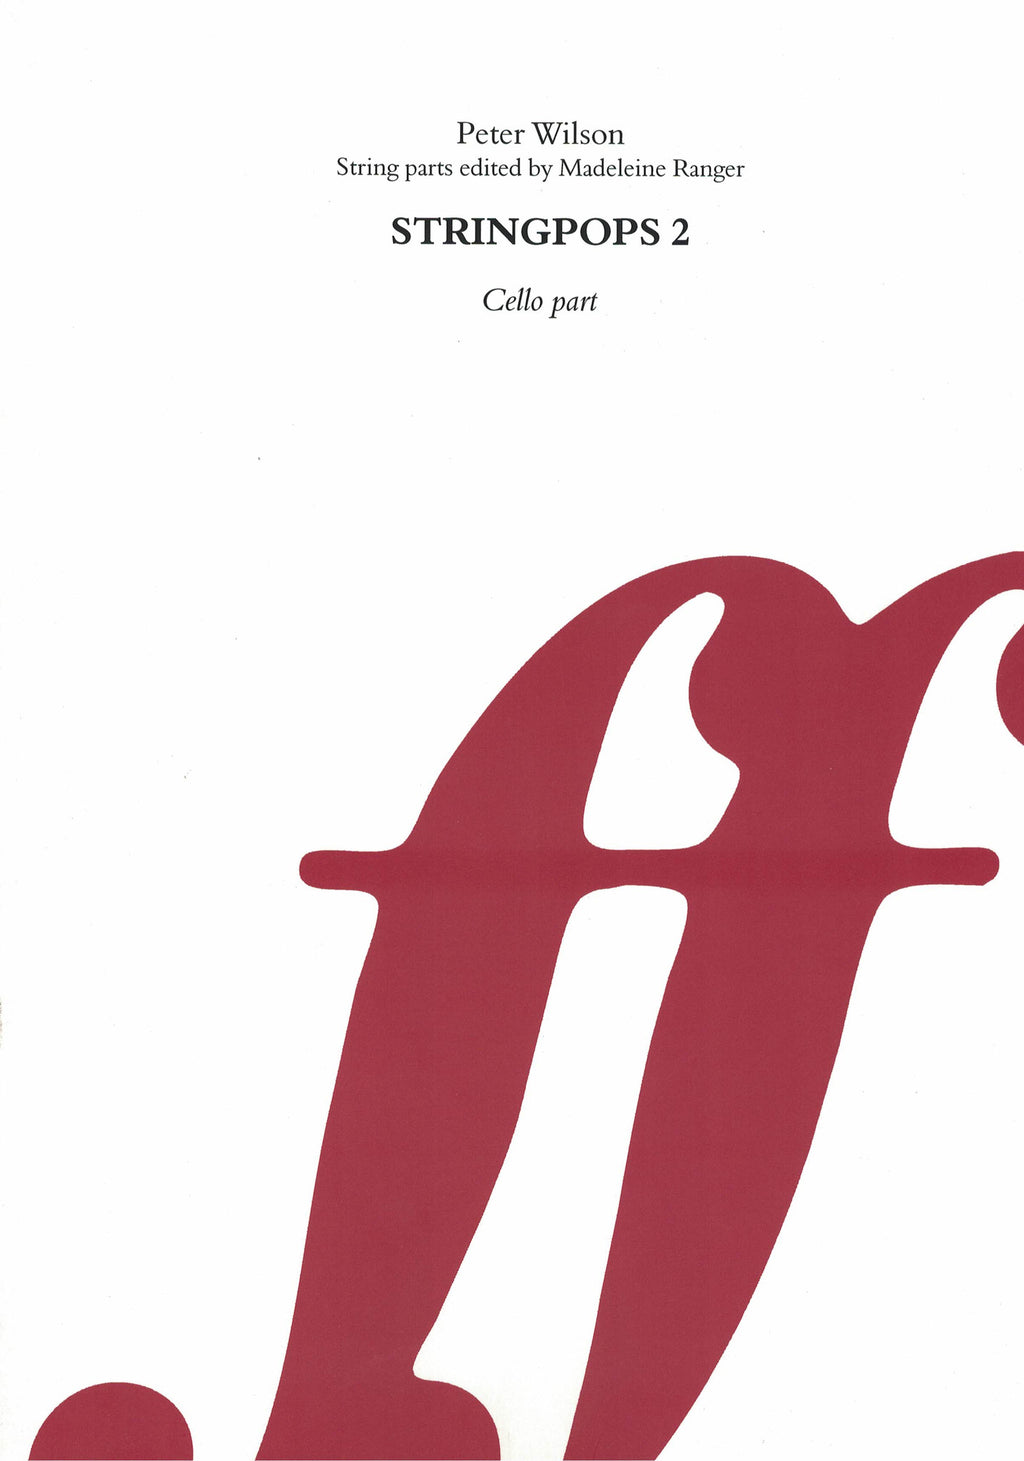 Stringpops Book 2 (Cello Part) - Music Creators Online